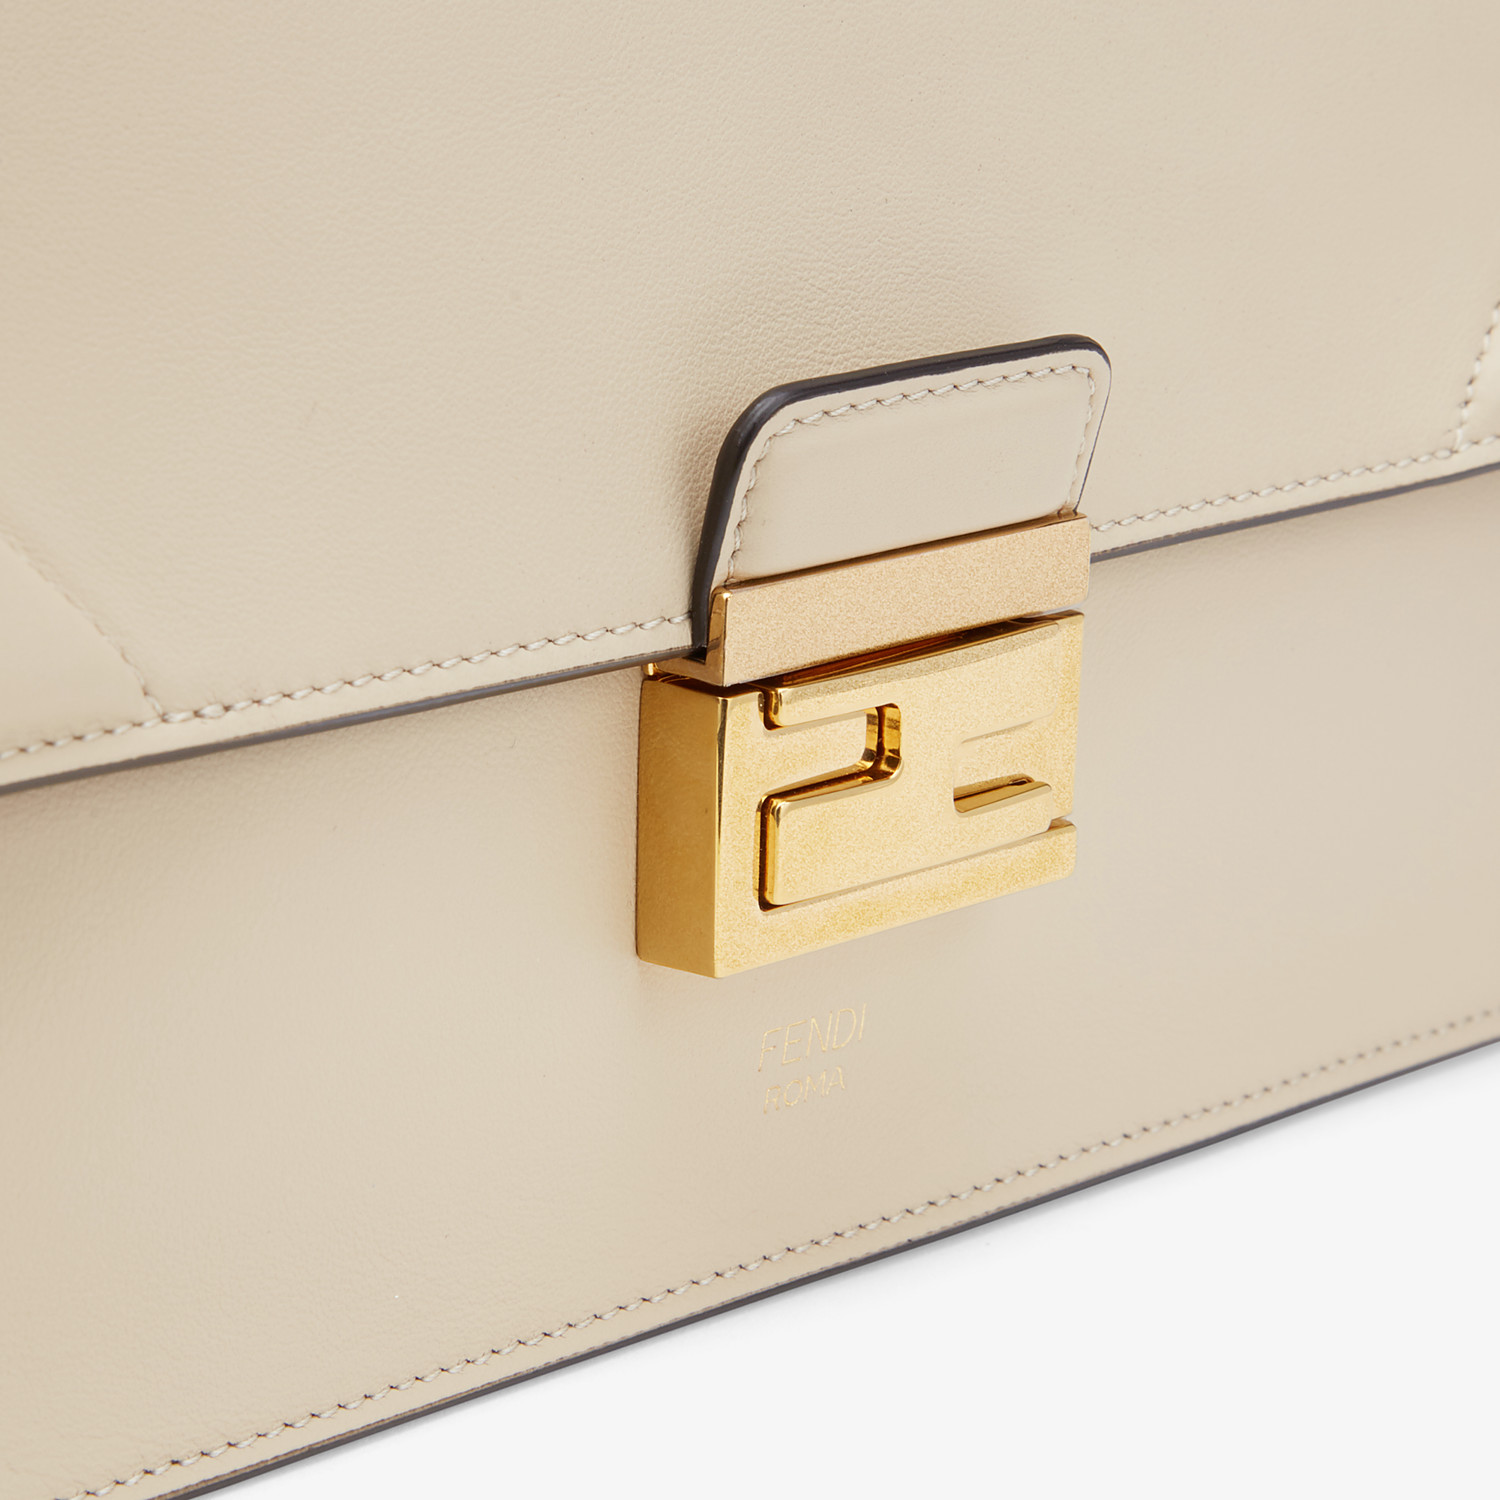 FENDI KAN U - Beige leather bag - view 6 detail